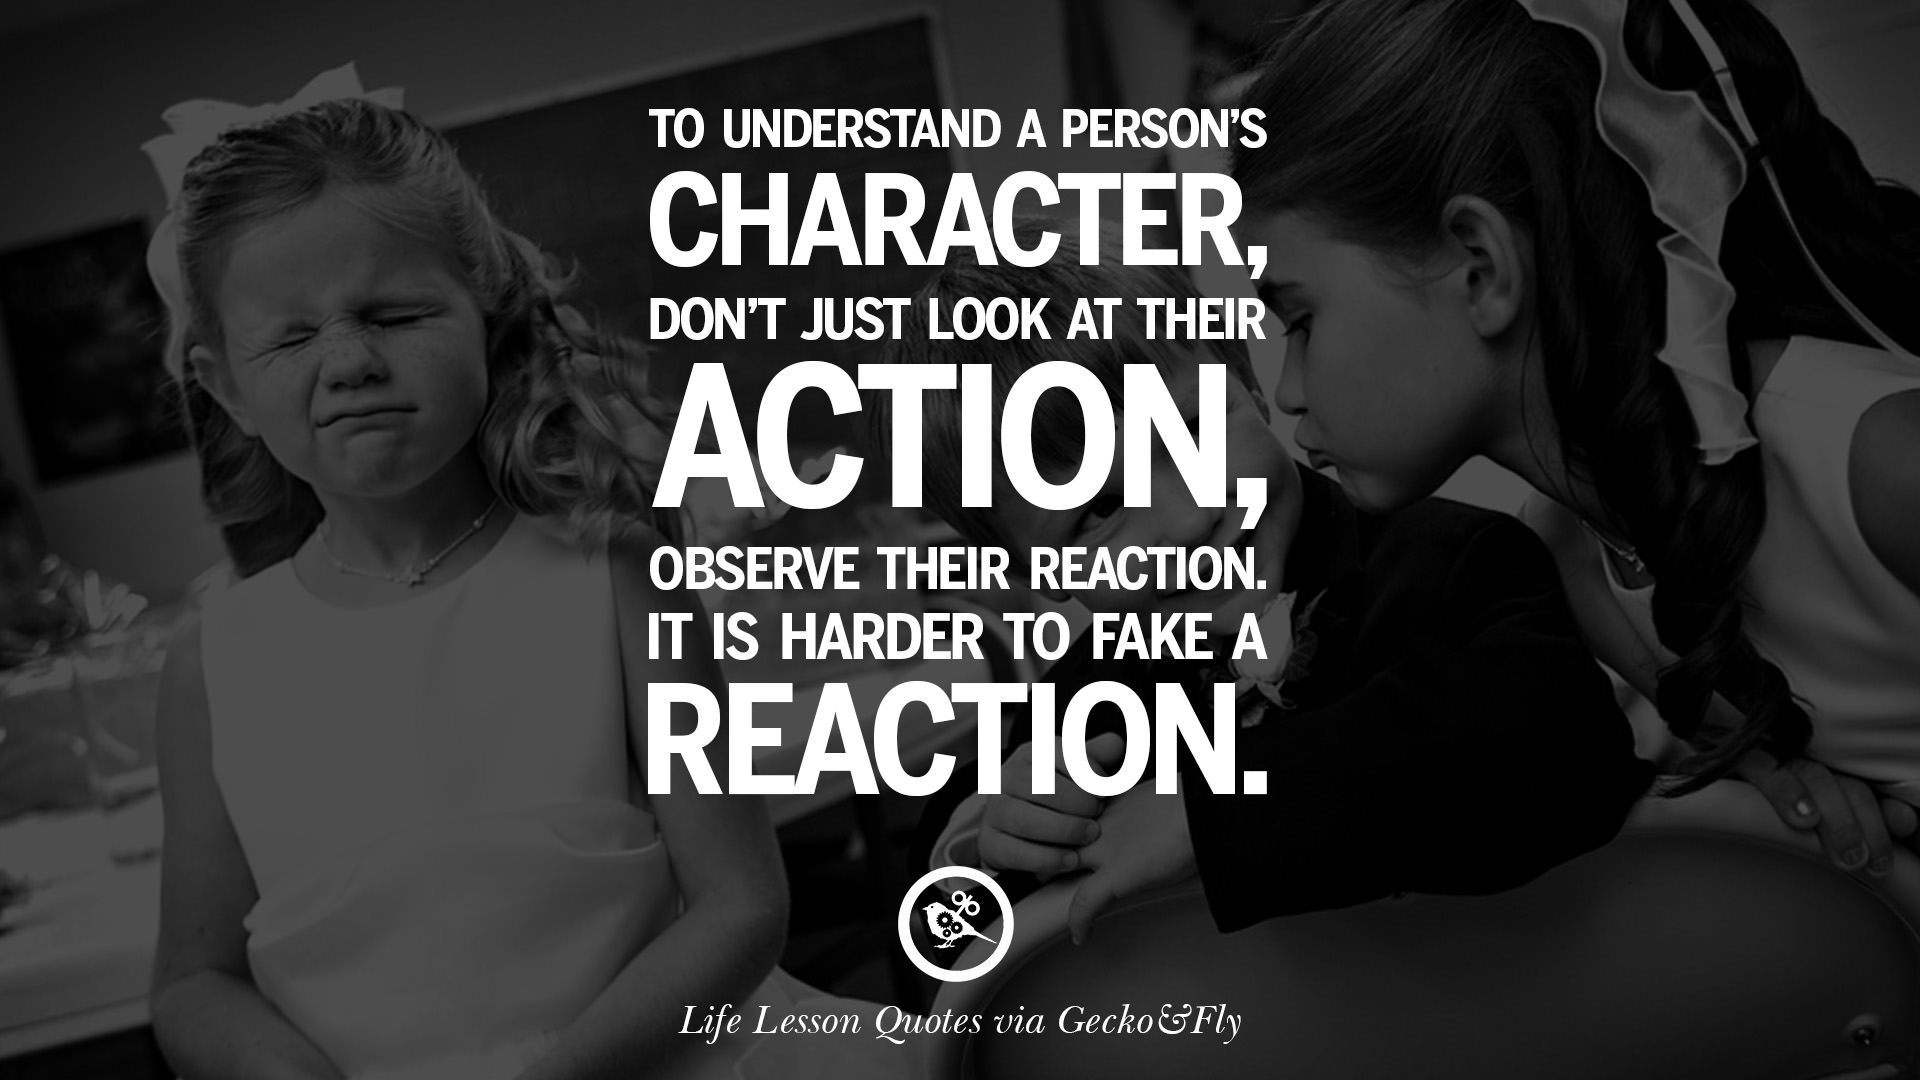 Quotes About Love And Life Lessons Extraordinary 15 Important Inspirational Quotes On Life Lessons And